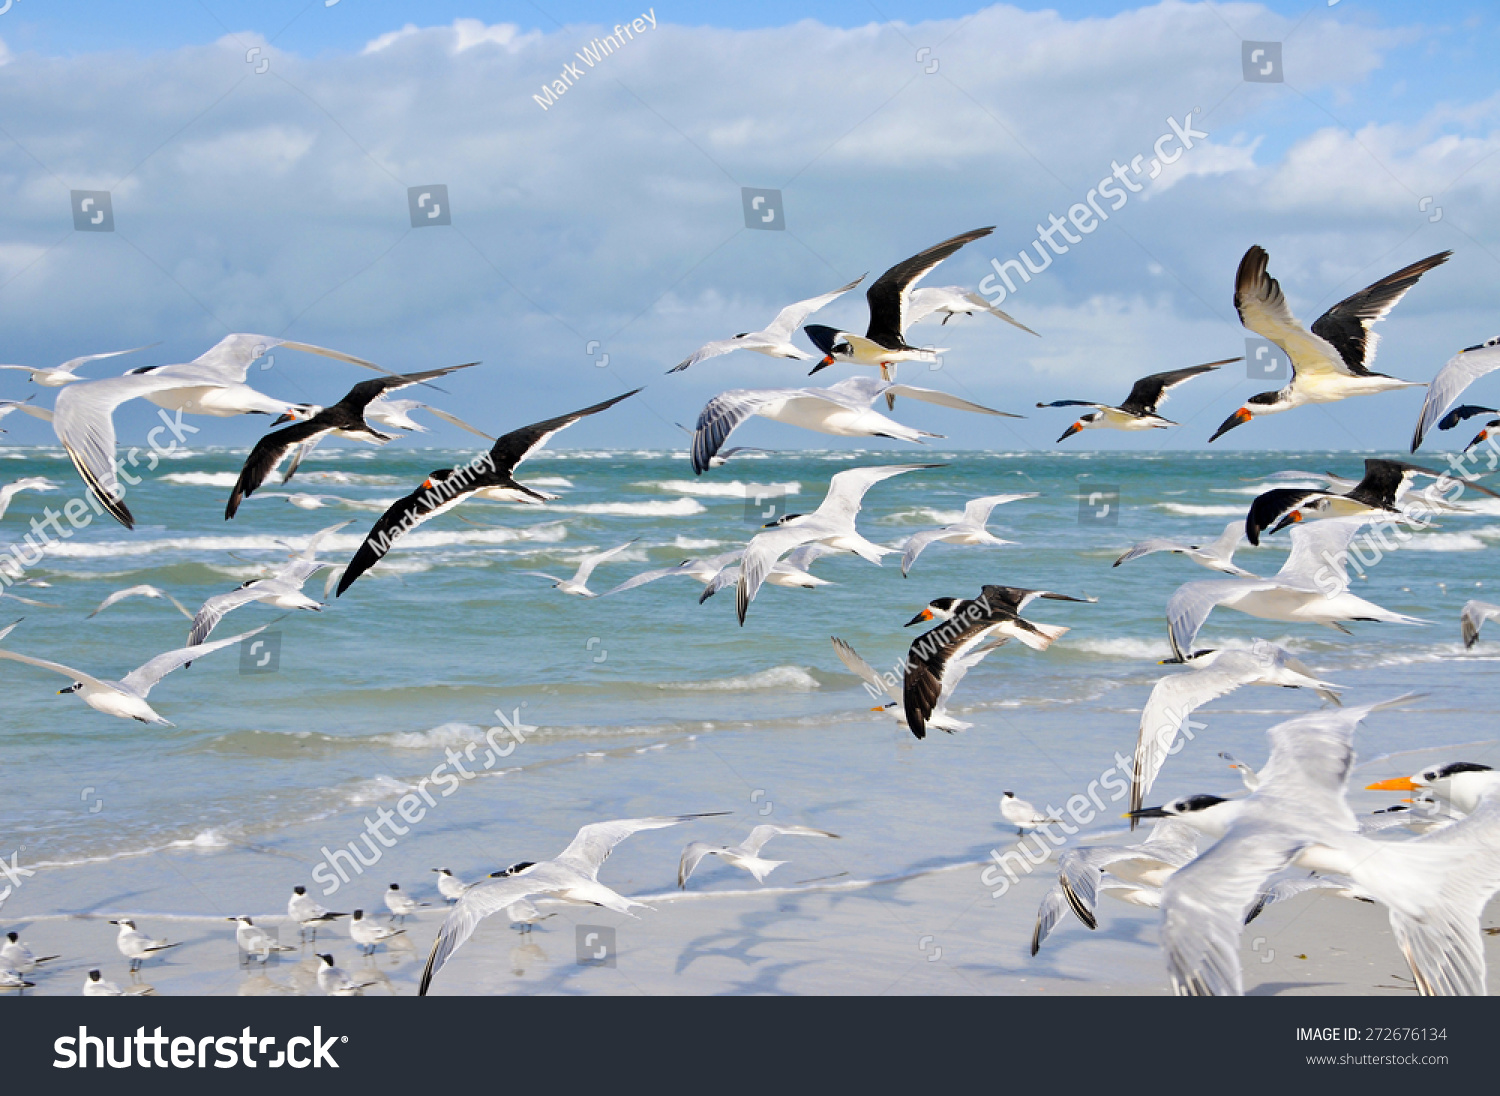 stock-photo-a-large-group-of-seagulls-ta